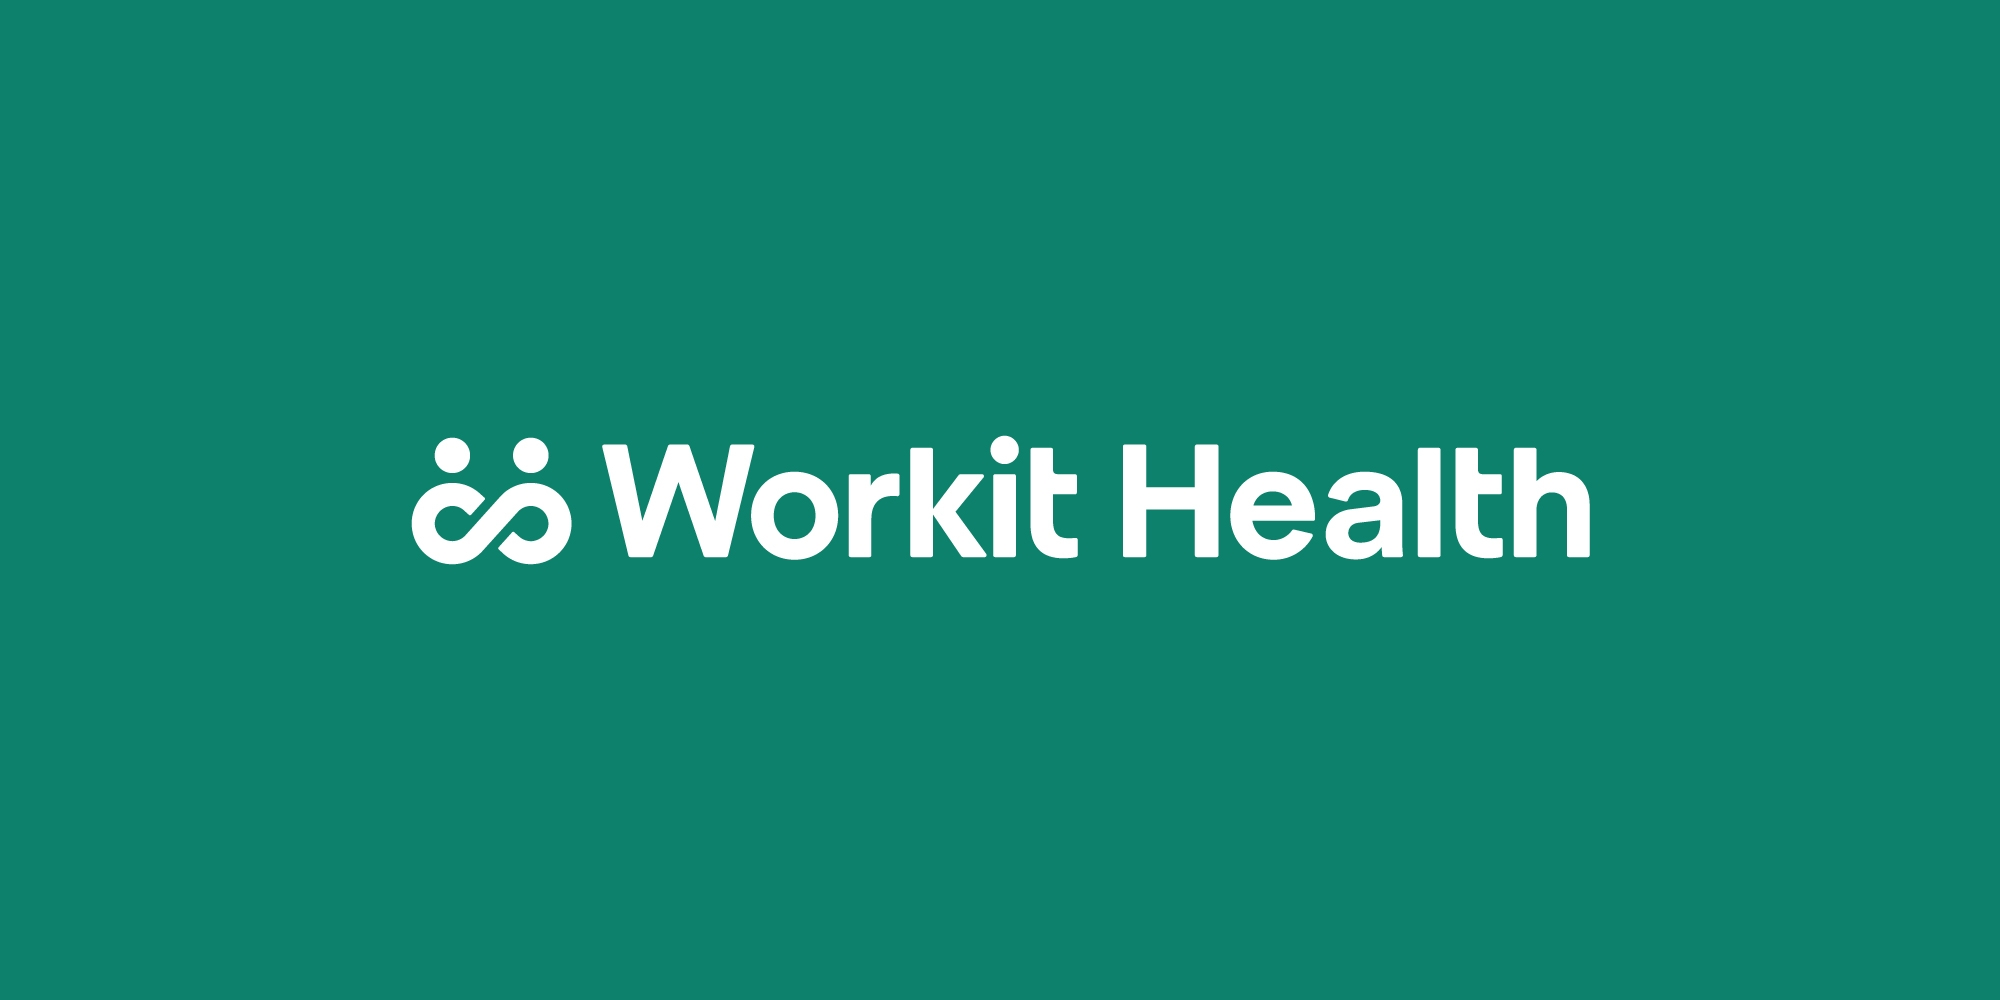 Workit Health logo on a green background